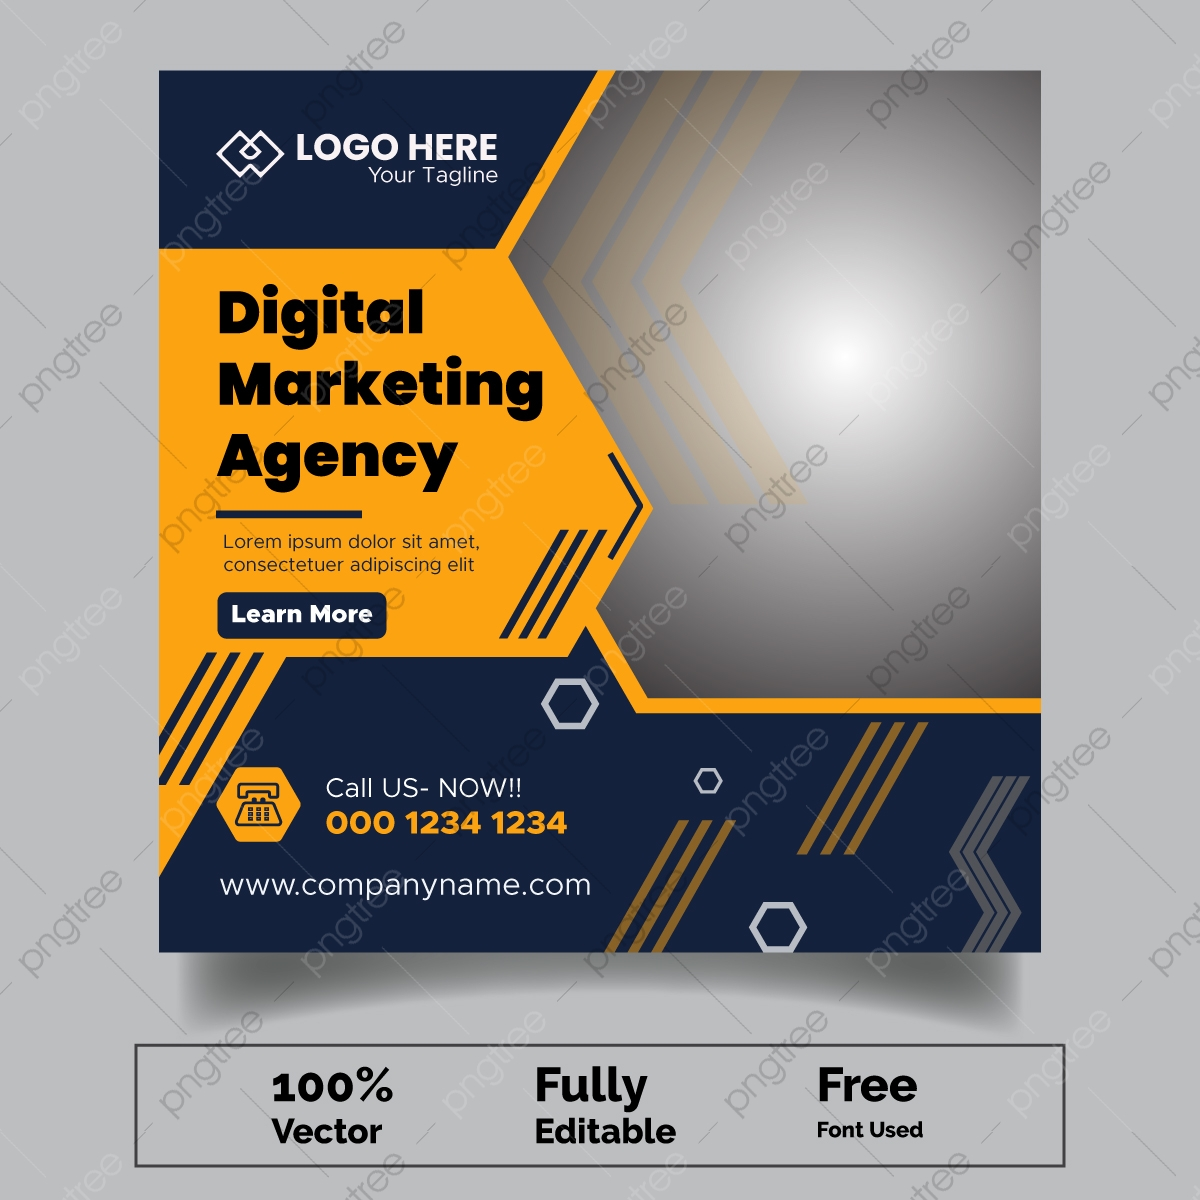 digital marketing png vector psd and clipart with transparent background for free download pngtree https pngtree com freepng digital marketing web banner 5442085 html